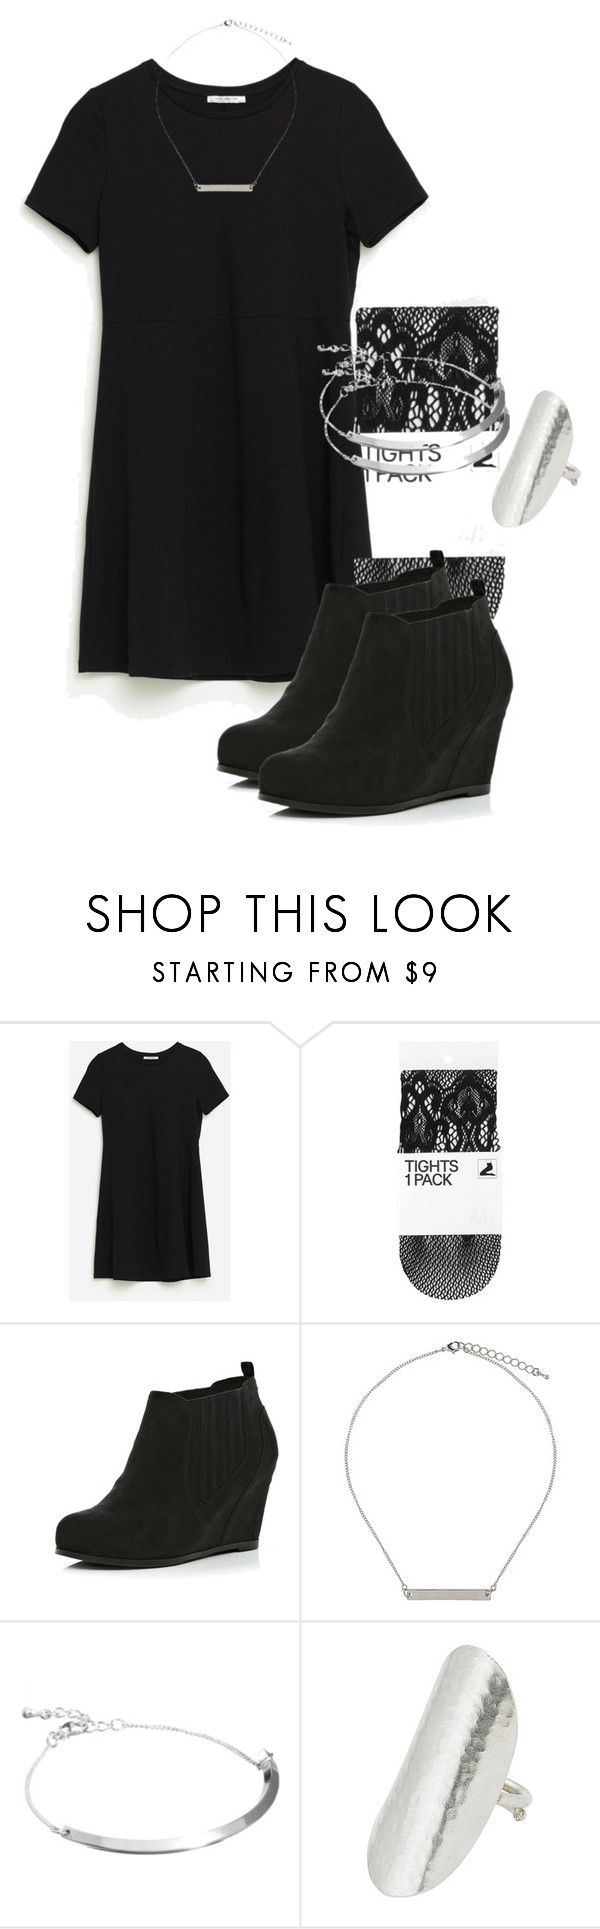 Allison Argent Outfit by zoegeorgiou2001 on Polyvore featuring H&M, River Island, People Tree, ASOS and Topshop